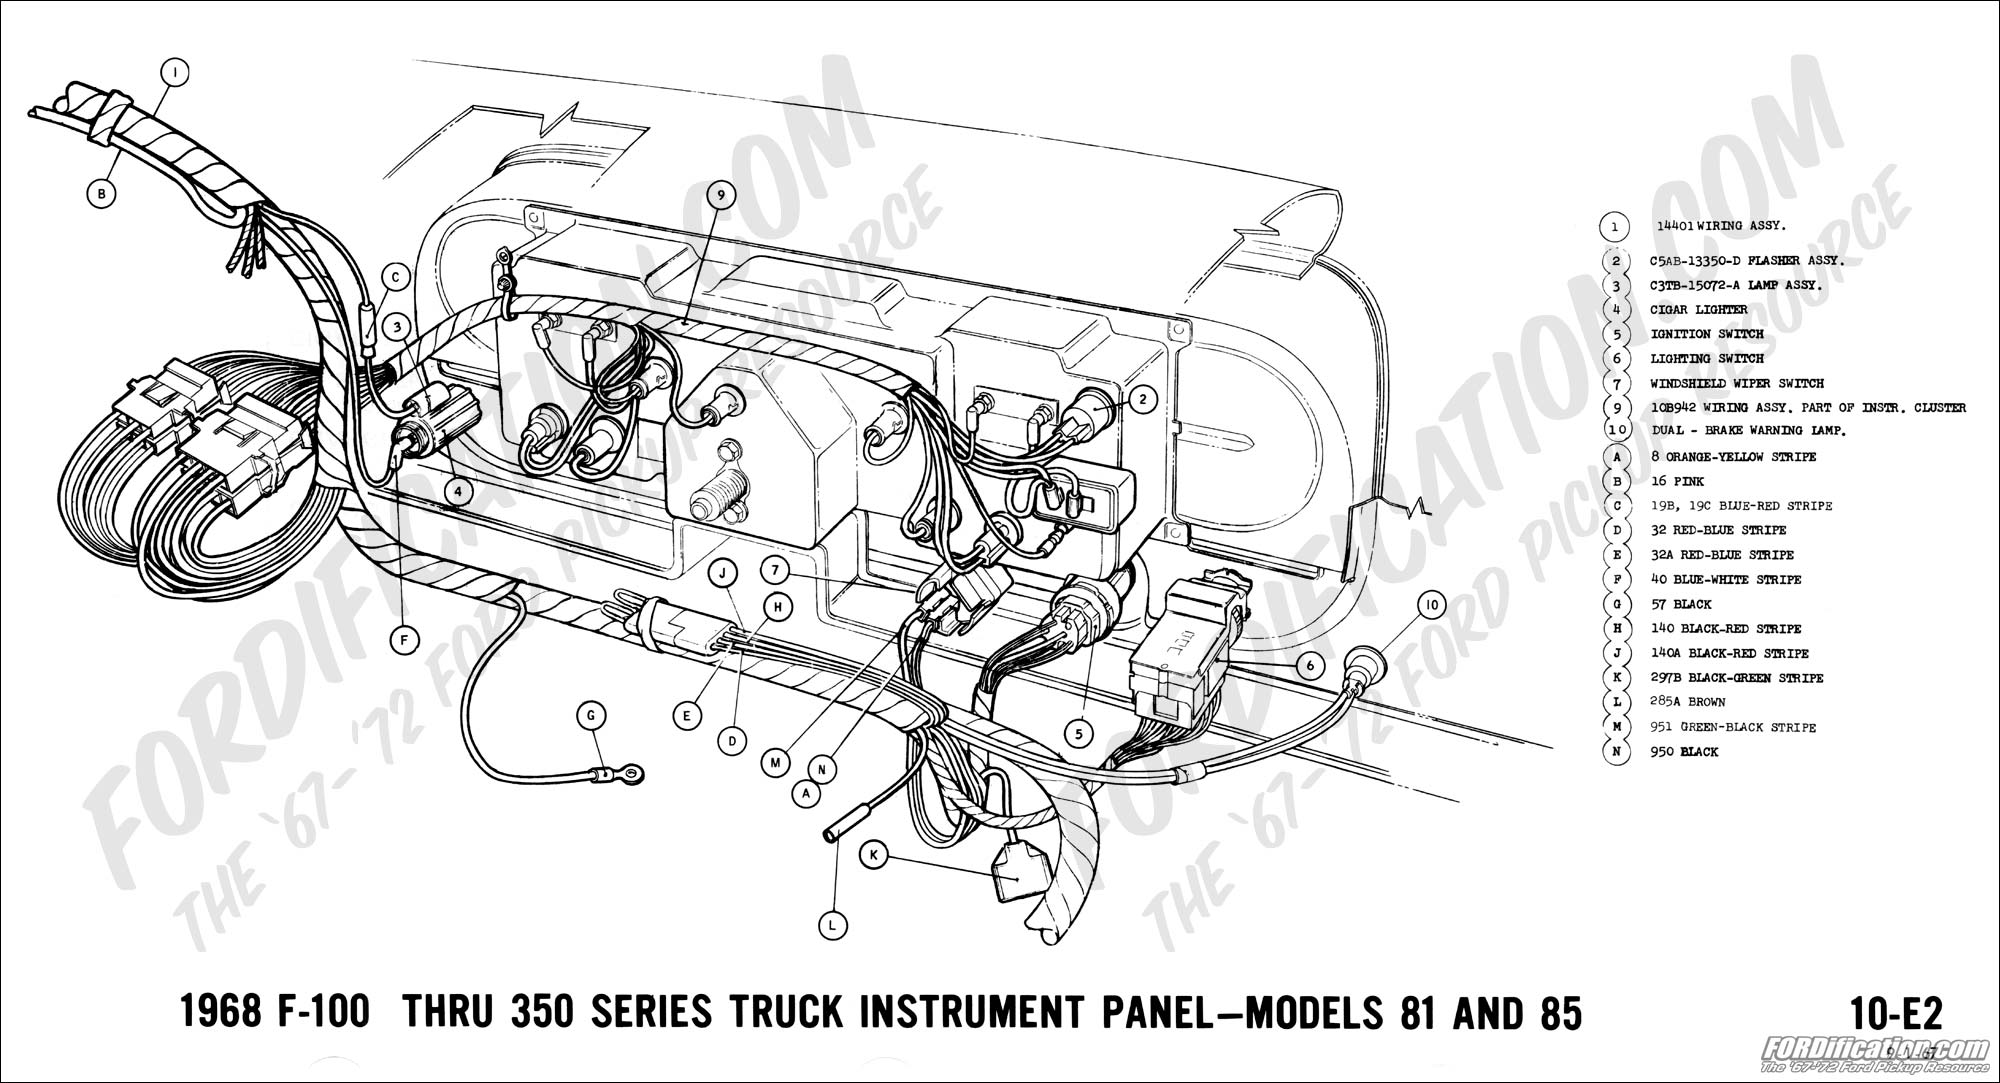 68 04 ford truck technical drawings and schematics section h wiring Ford 4600 Wiring Schematic at nearapp.co